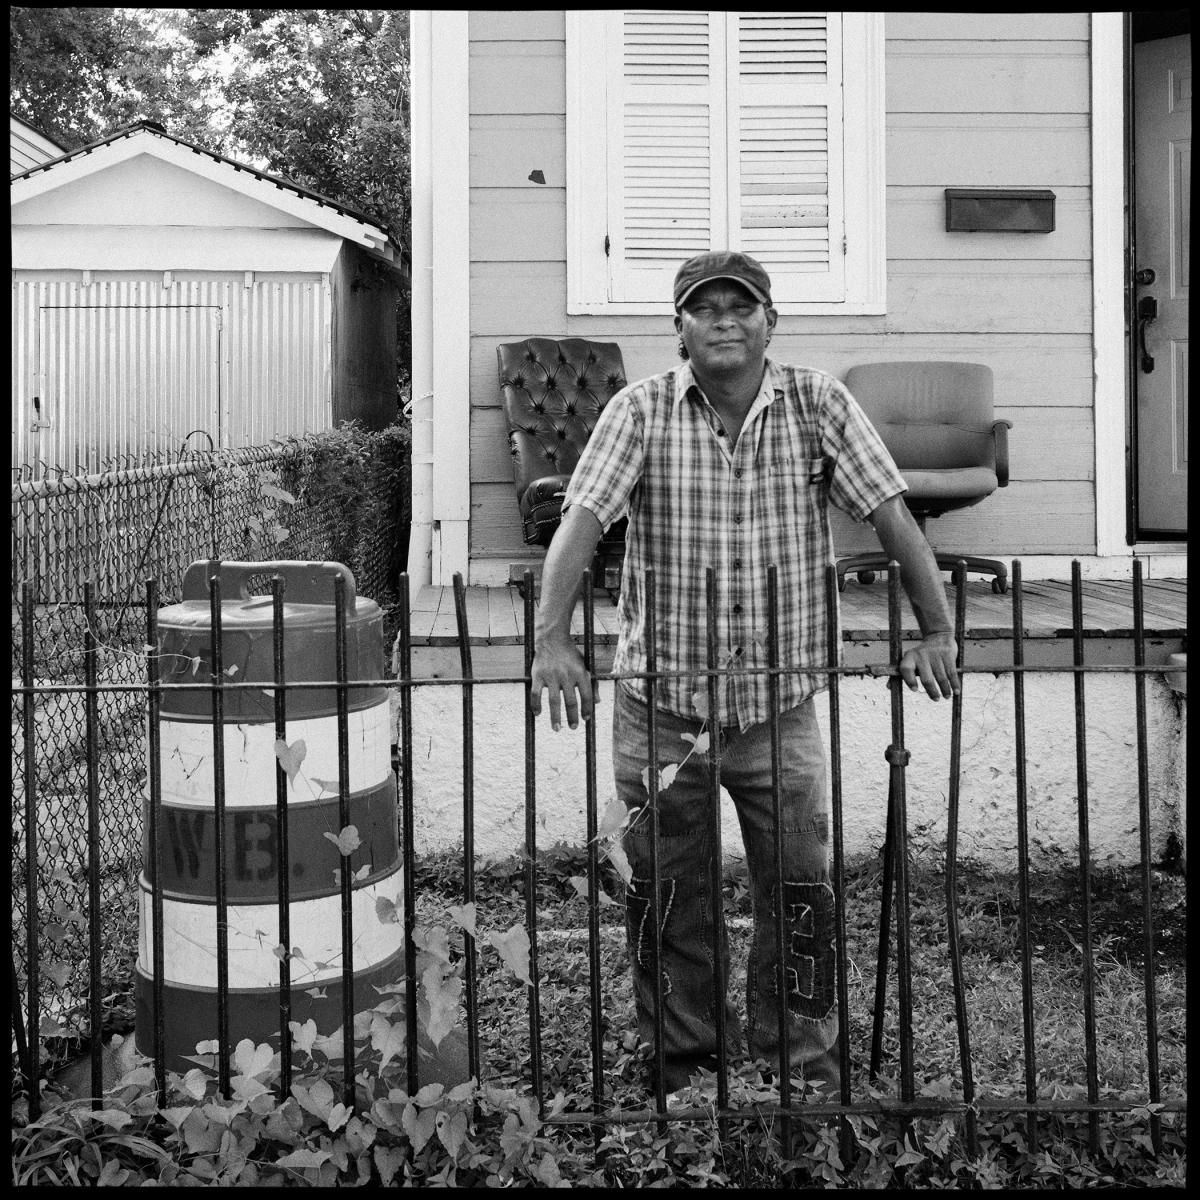 """The Ogden Museum of Southern Art's """"The Rising"""" exhibition includes portraits (by photographer Jonathan Traviesa) of the day laborers who helped rebuild New Orleans after Hurricane Katrina."""